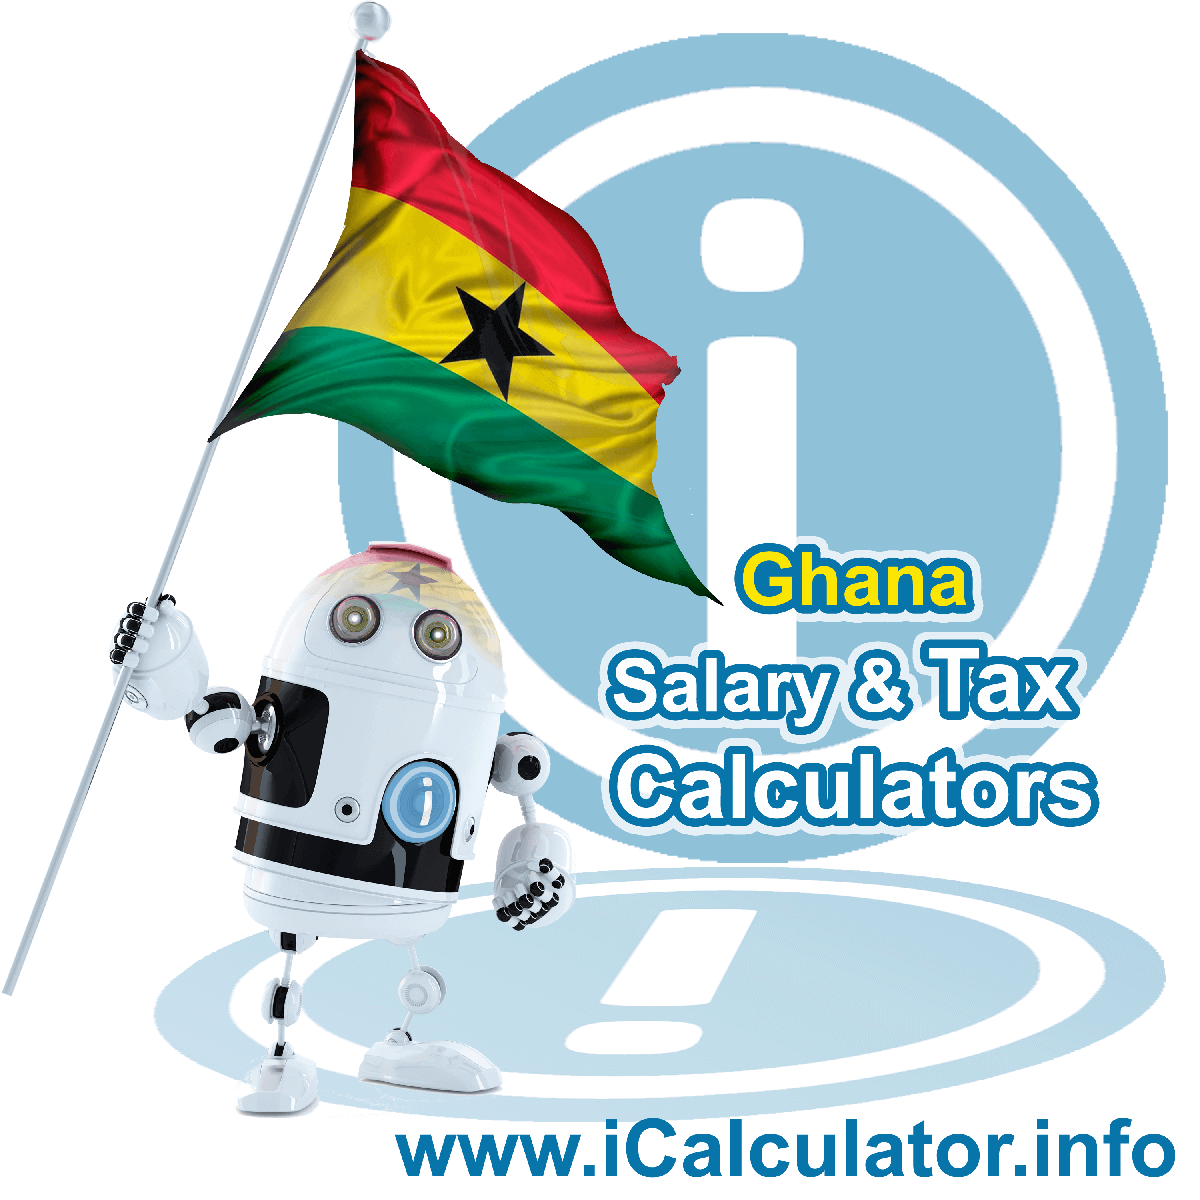 Ghana Salary Calculator. This image shows the Ghanaese flag and information relating to the tax formula for the Ghana Tax Calculator